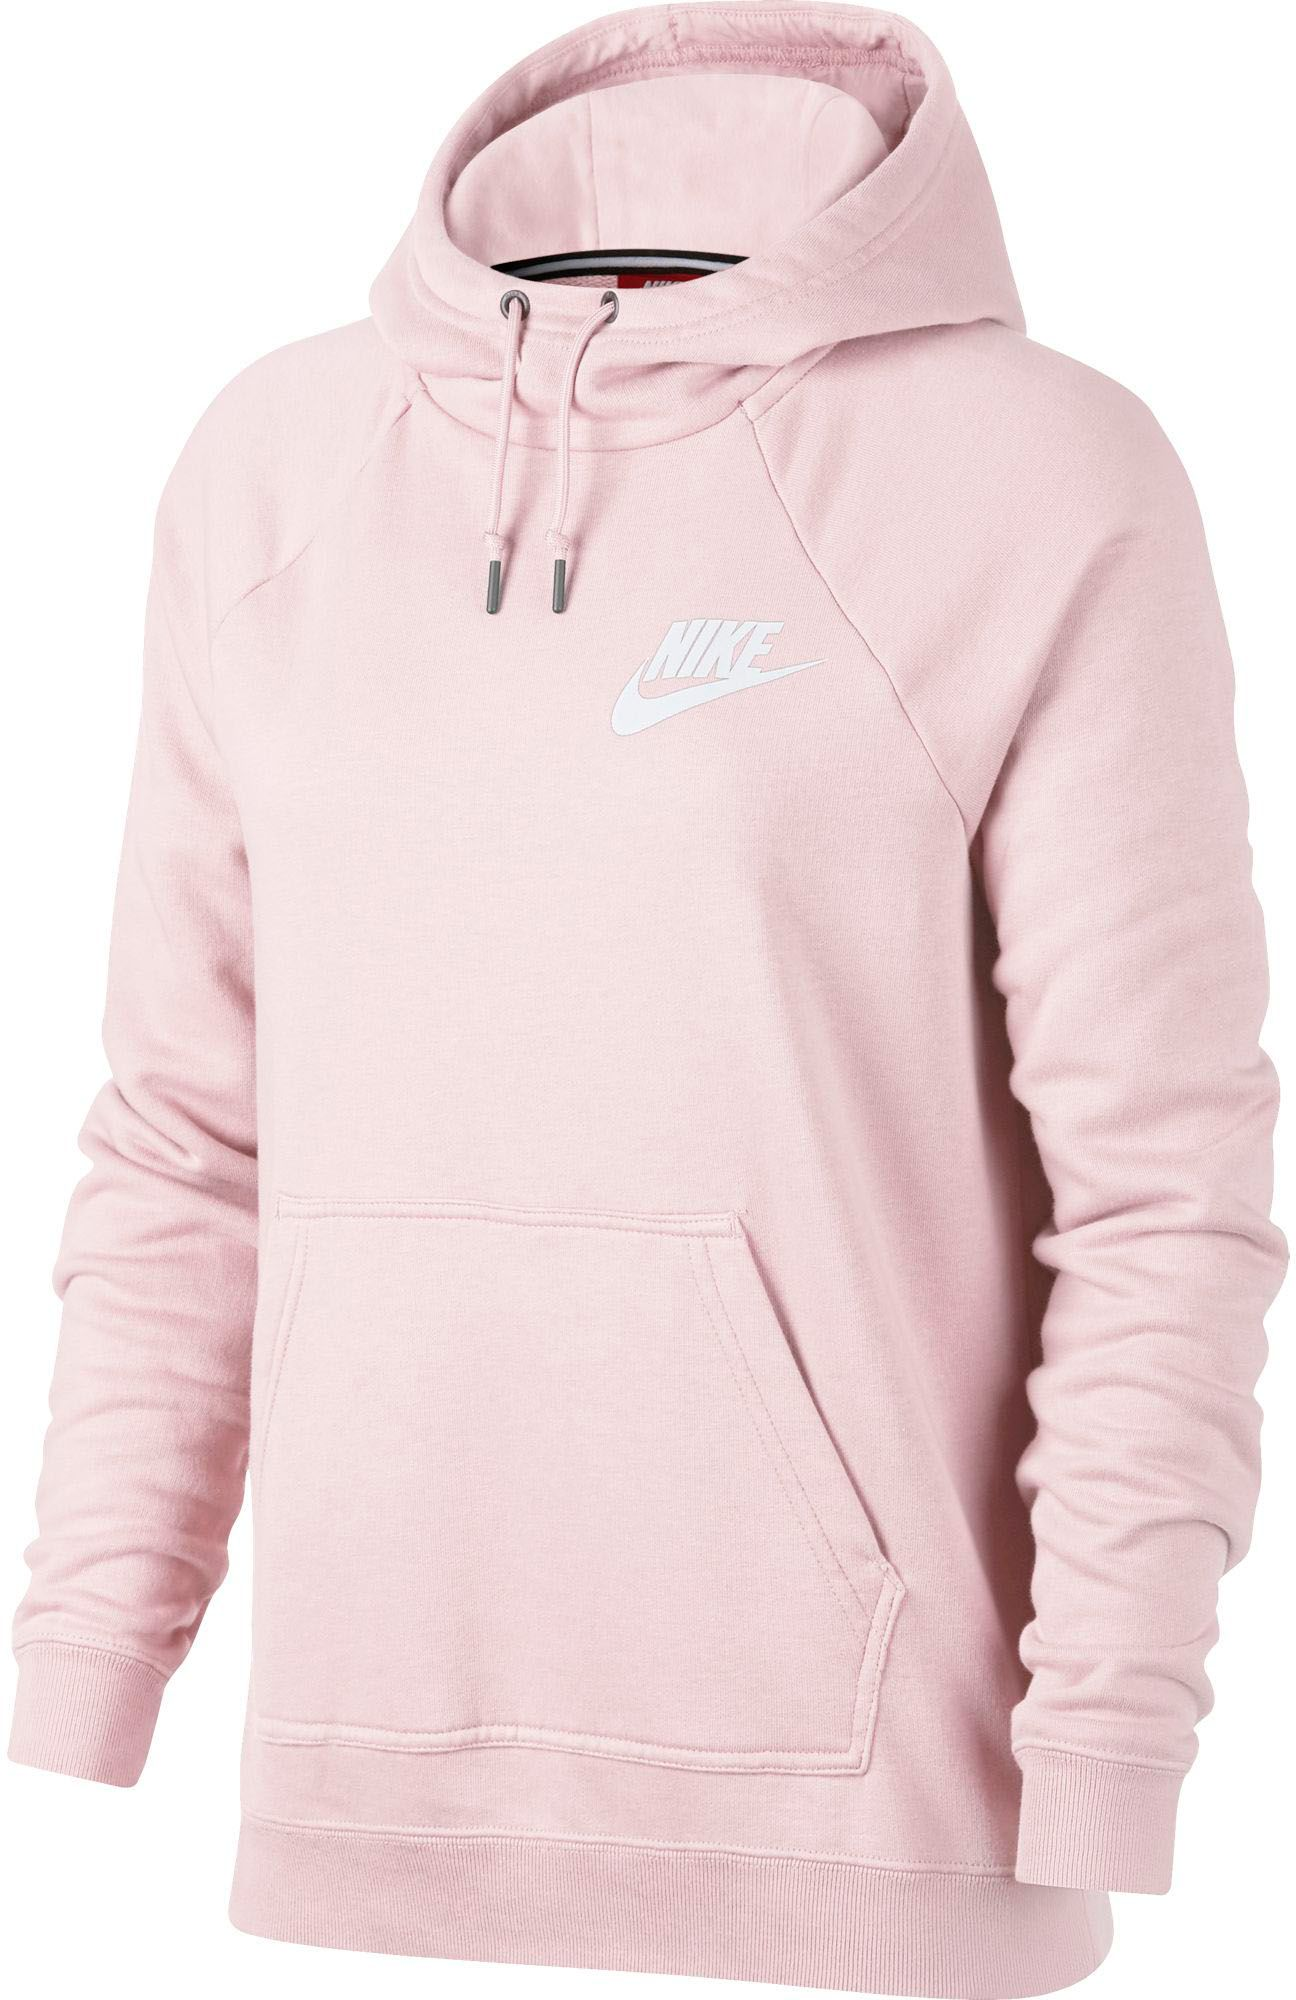 Pink Nike Hoodies For Women | Provincial Archives of ...